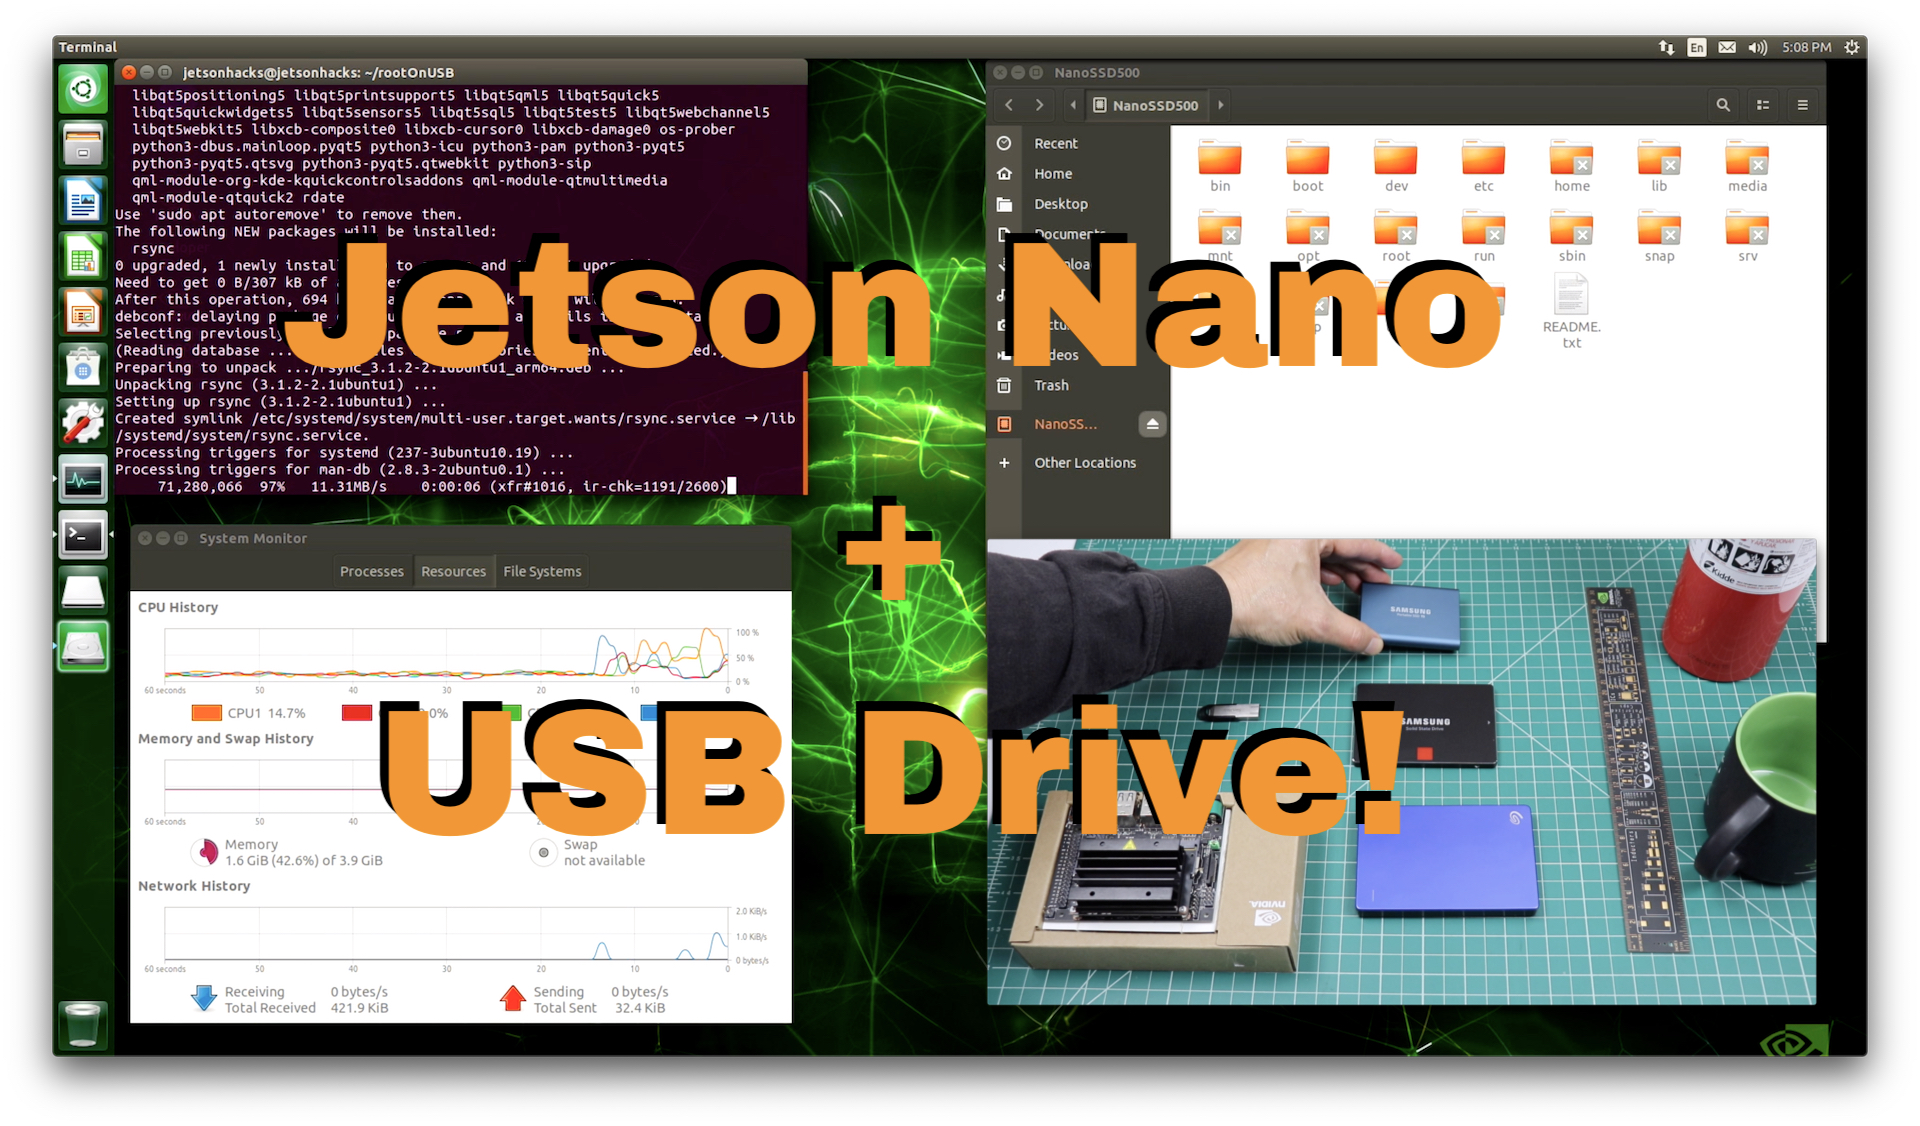 Jetsonhacks — Build OpenCV 3 4 with CUDA on NVIDIA Jetson TX2